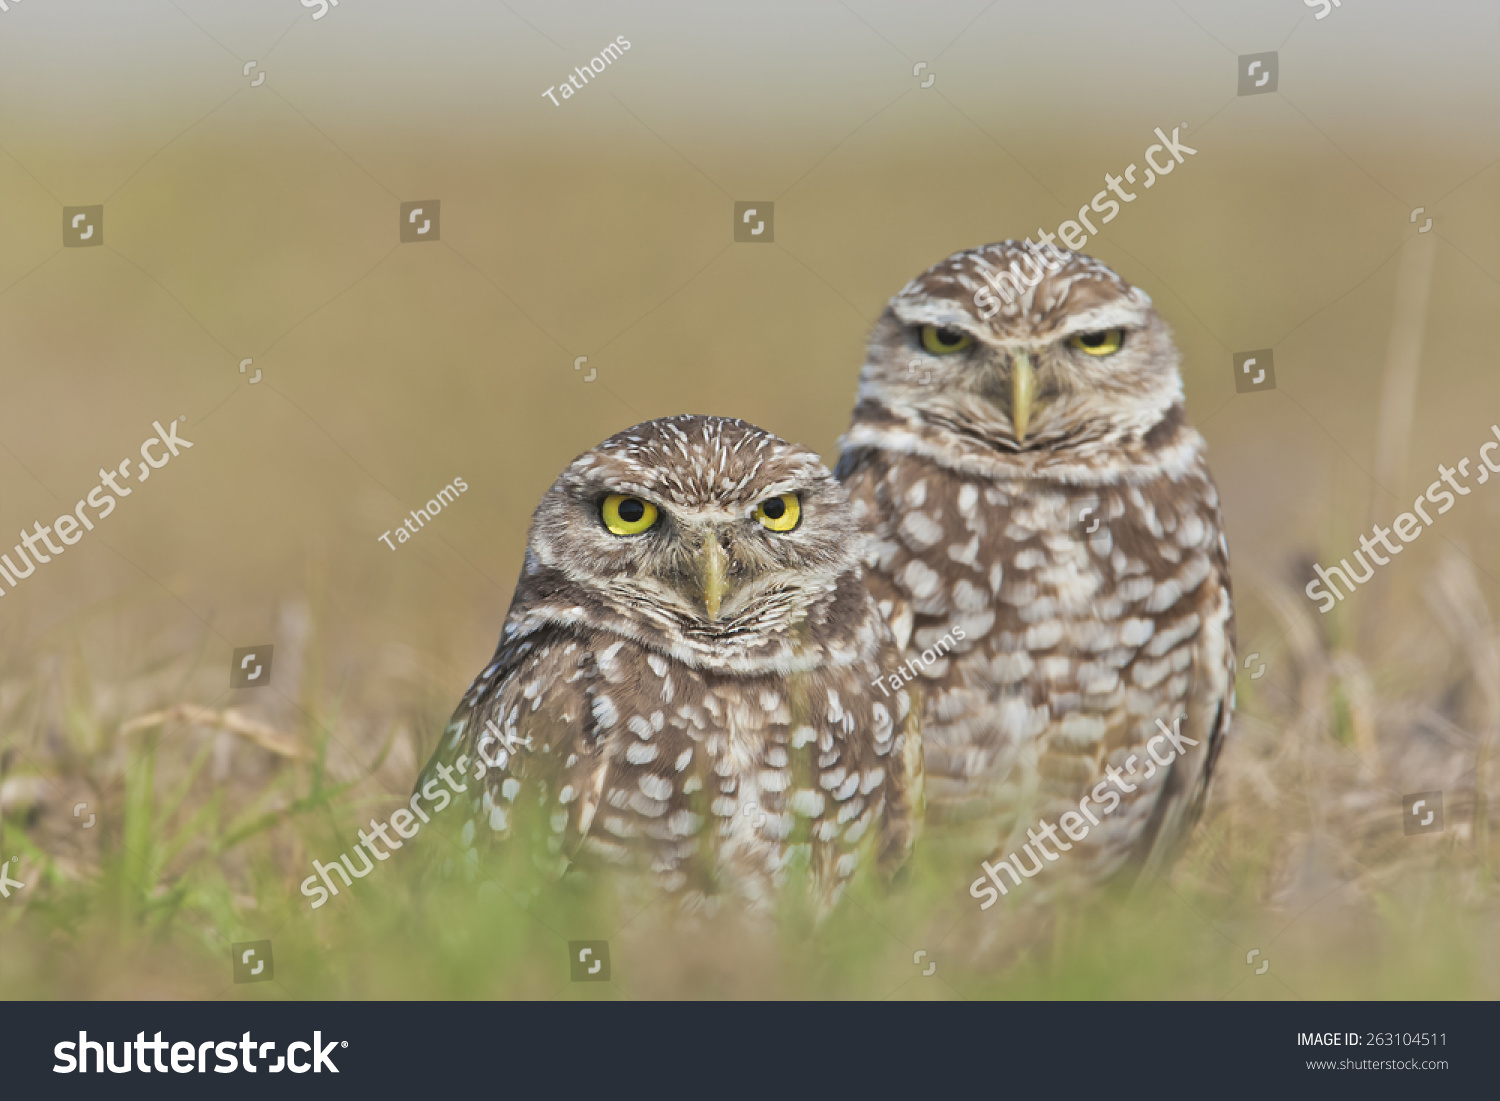 Burrowing owls stern directly at you. Focus on left one.